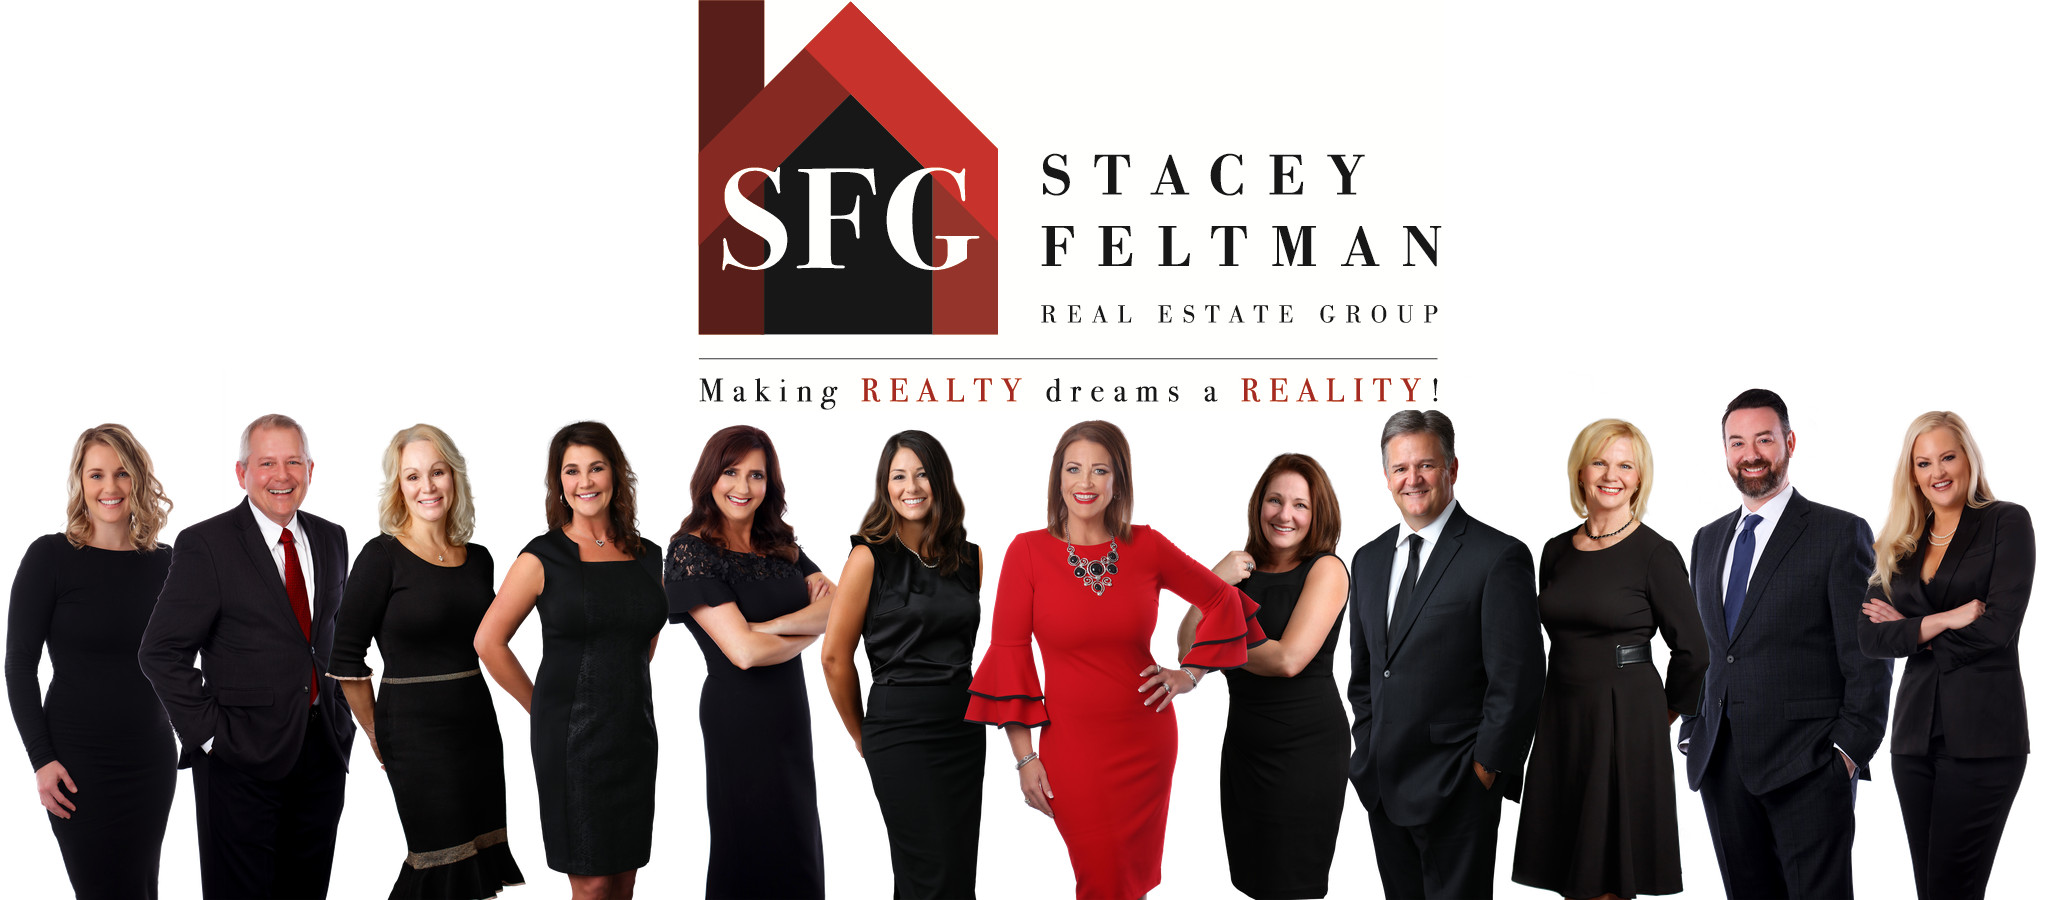 Stacey Feltman Group